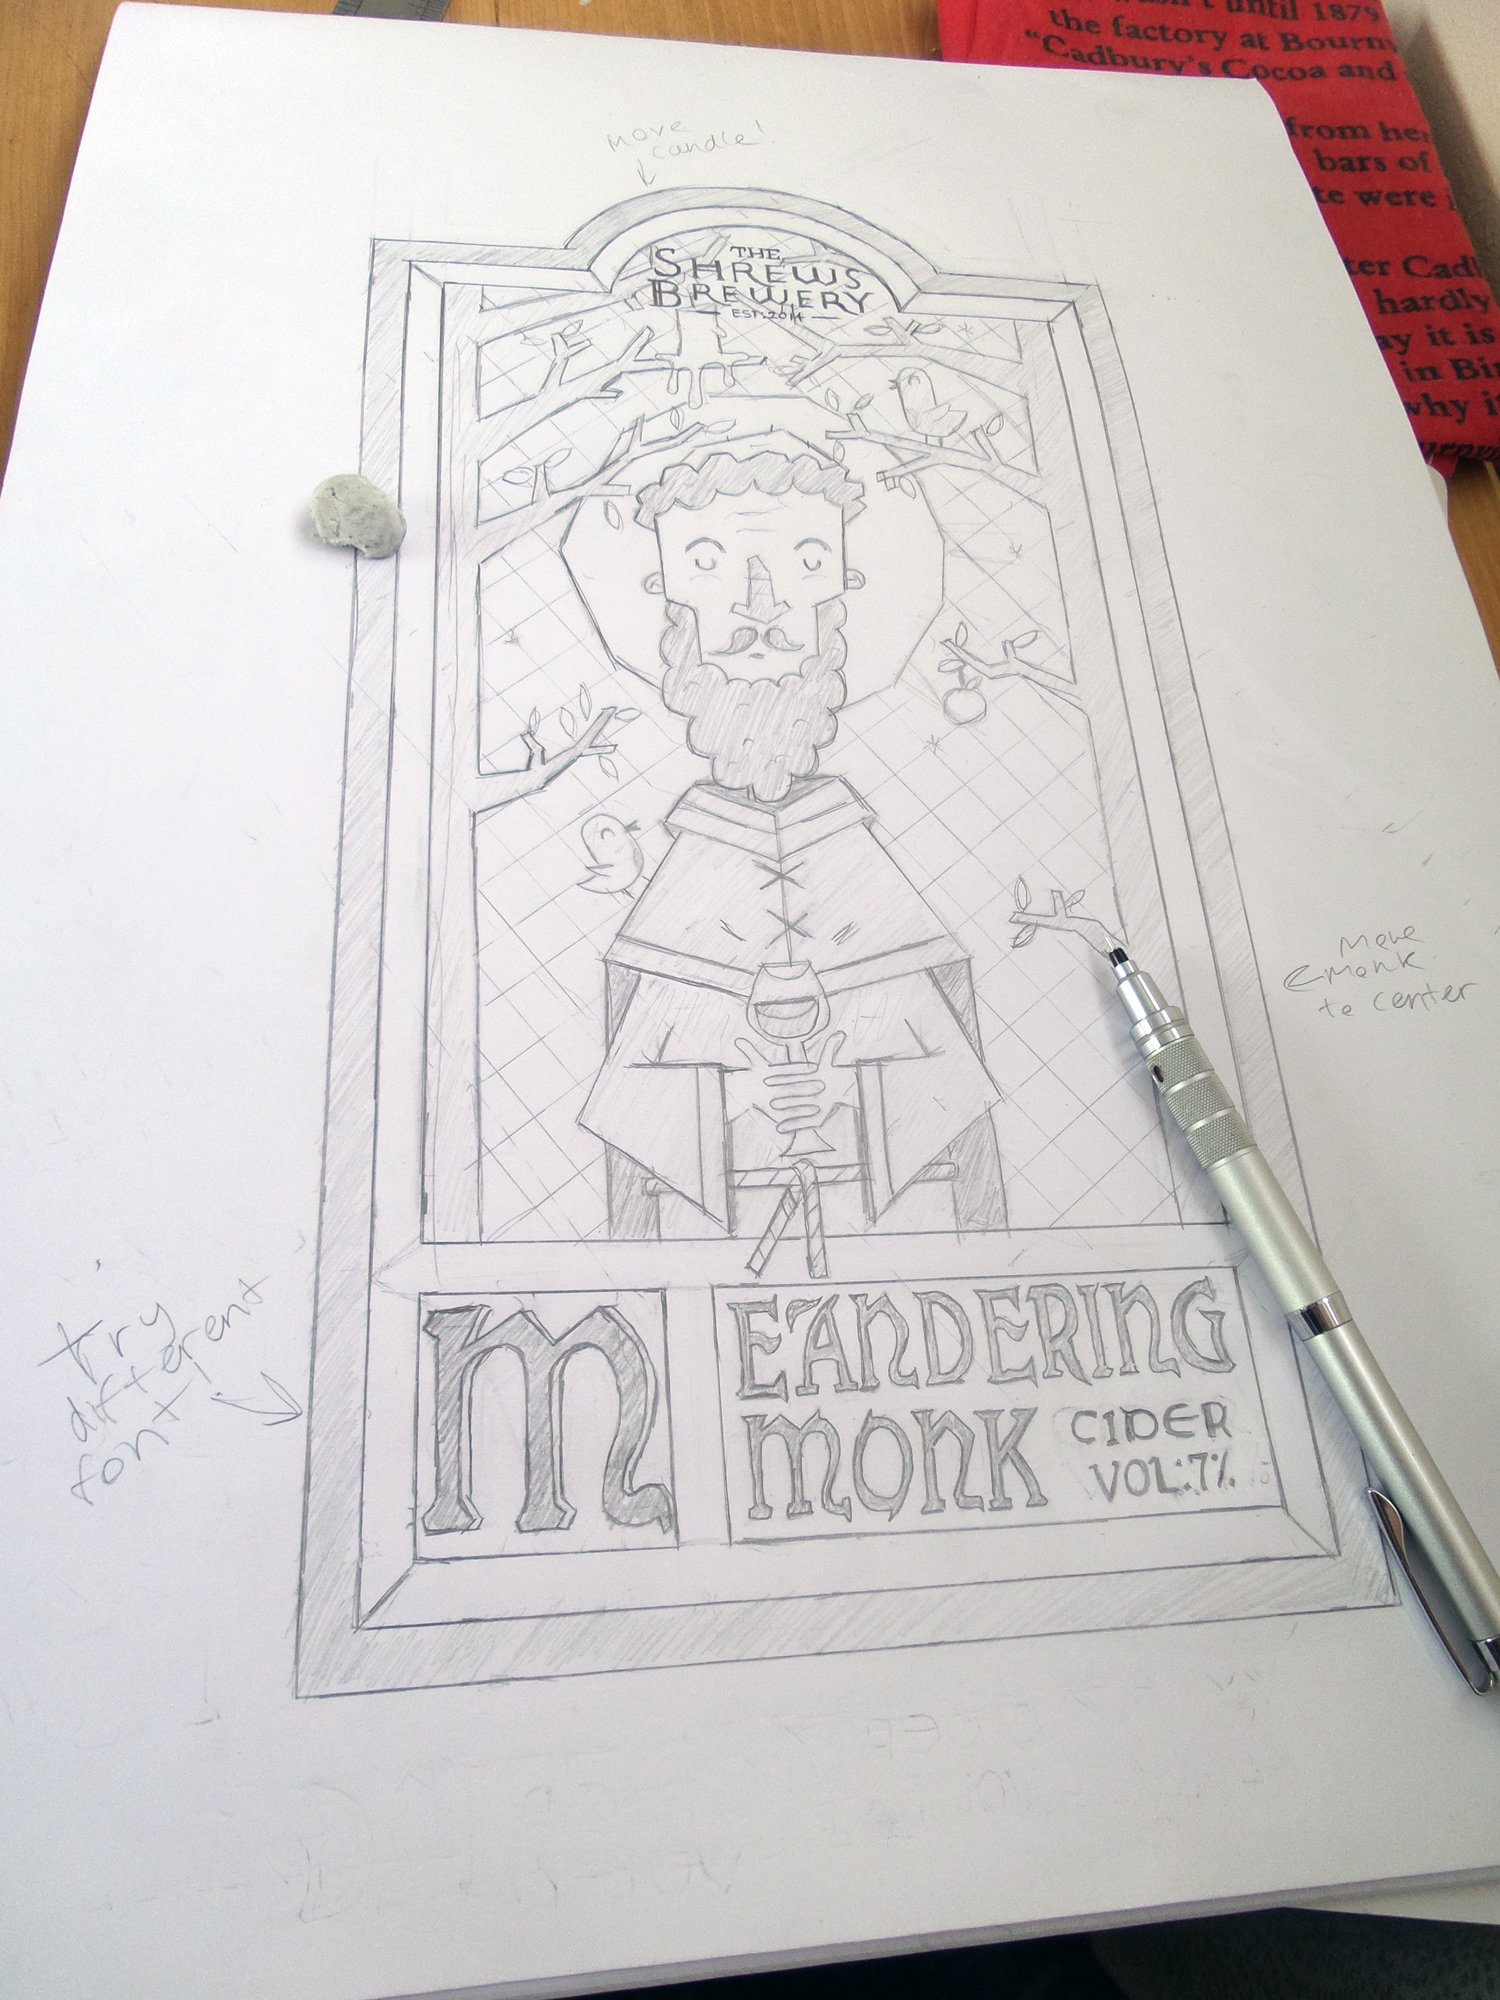 meandering-monk-cider-label-design-Illustration-sketch